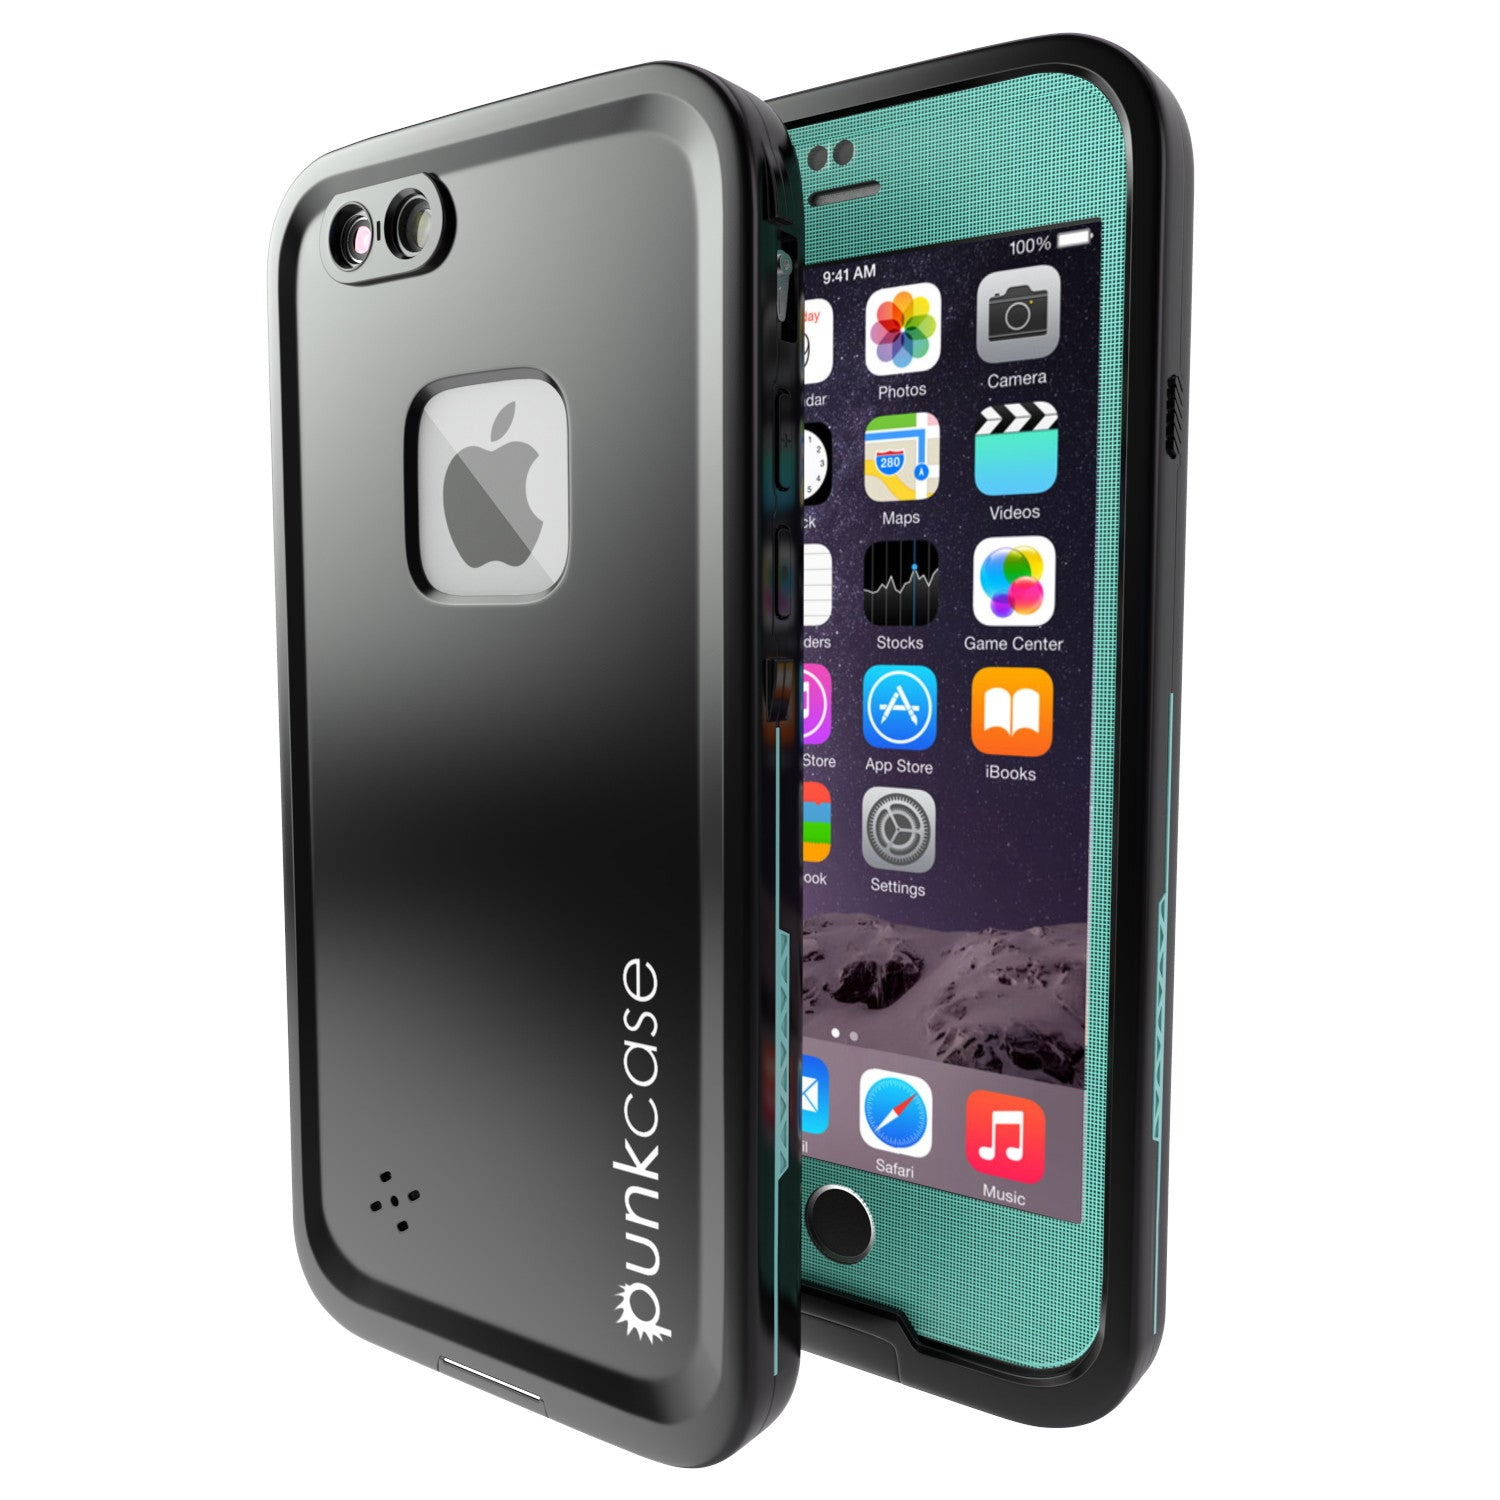 iPhone 6S/6 Waterproof Case, Punkcase SpikeStar Teal | Thin Fit 6.6ft Underwater IP68 | Warranty